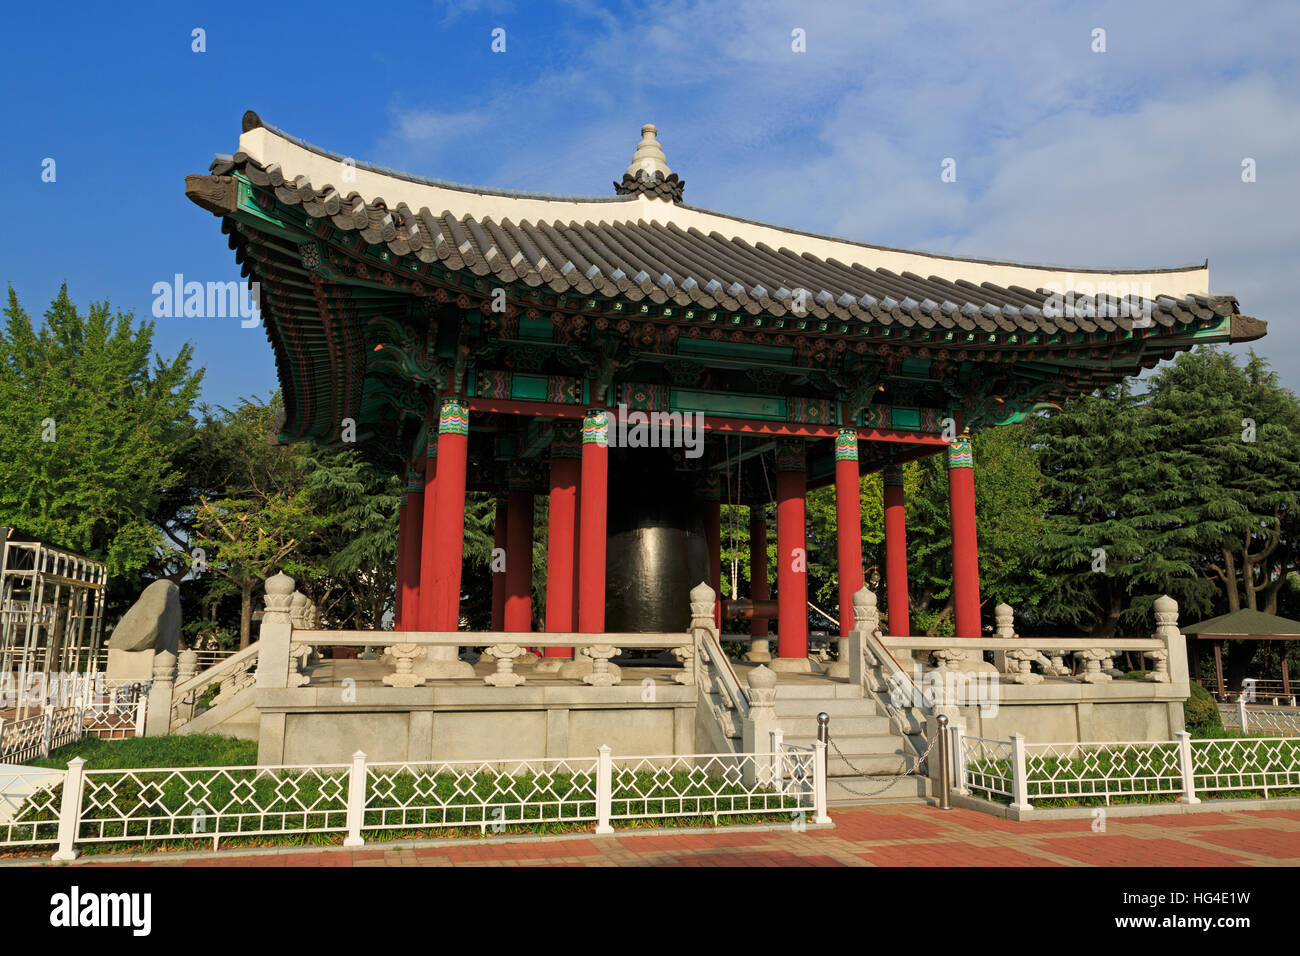 Citizen's Bell Pavillion, Yongdusan Park, Busan, South Korea, Asia - Stock Image